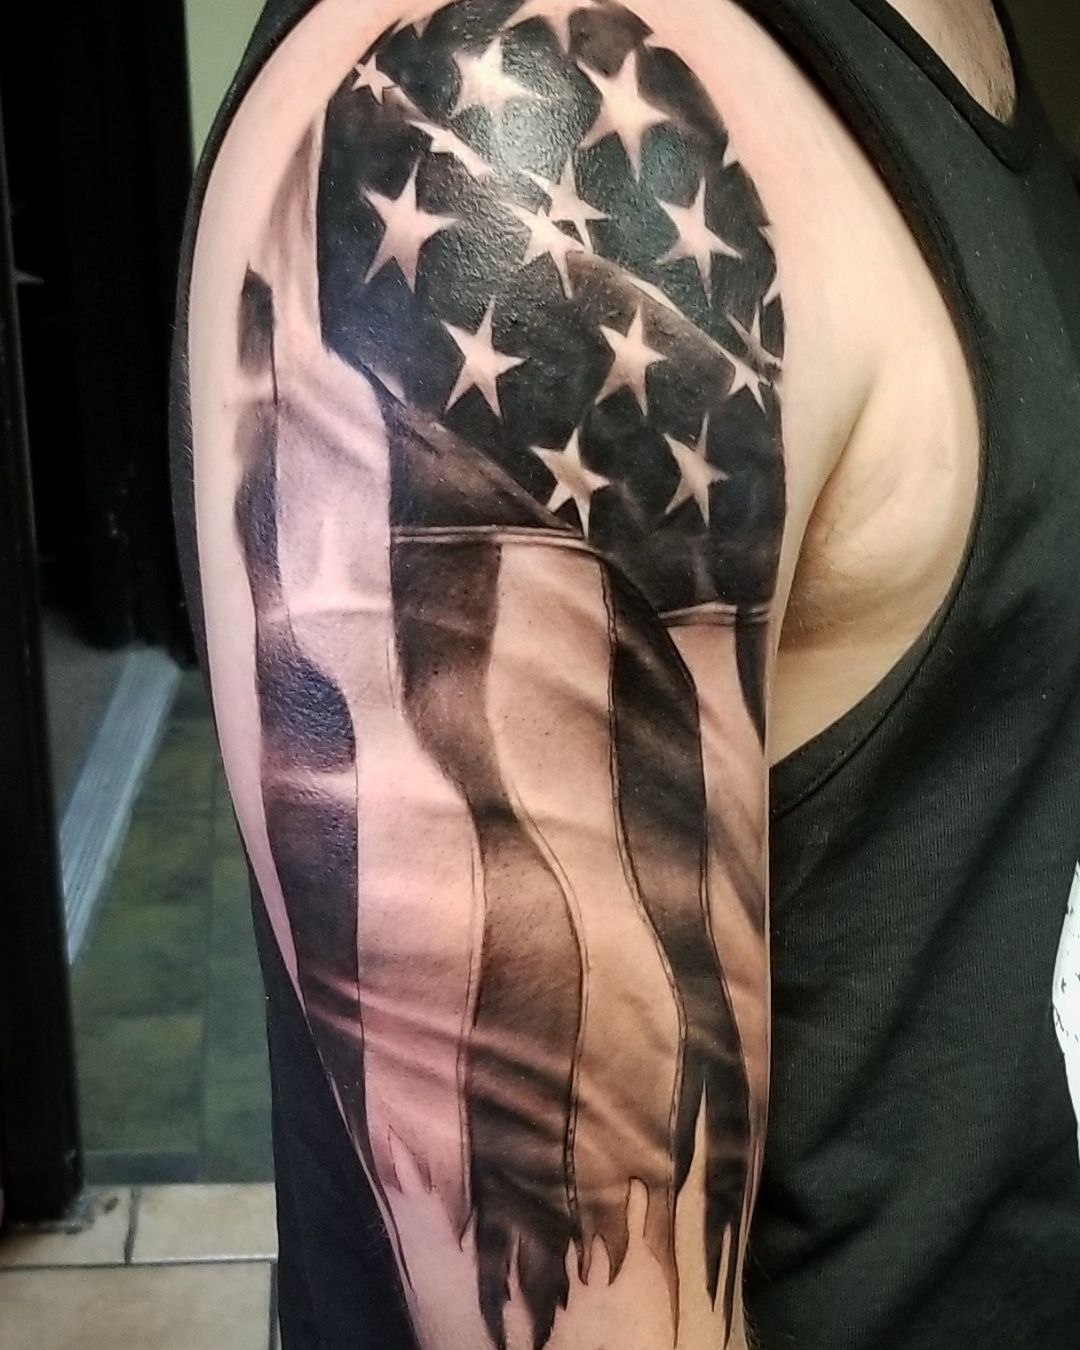 Black And Grey Flag Tattoo : black, tattoo, Johnson,, Tattoos, Tattoo,, Chicago,, Chicago, Tattoo, Artist,, Aztekink,, Vict…, Black, Sleeve,, American, Sleeve